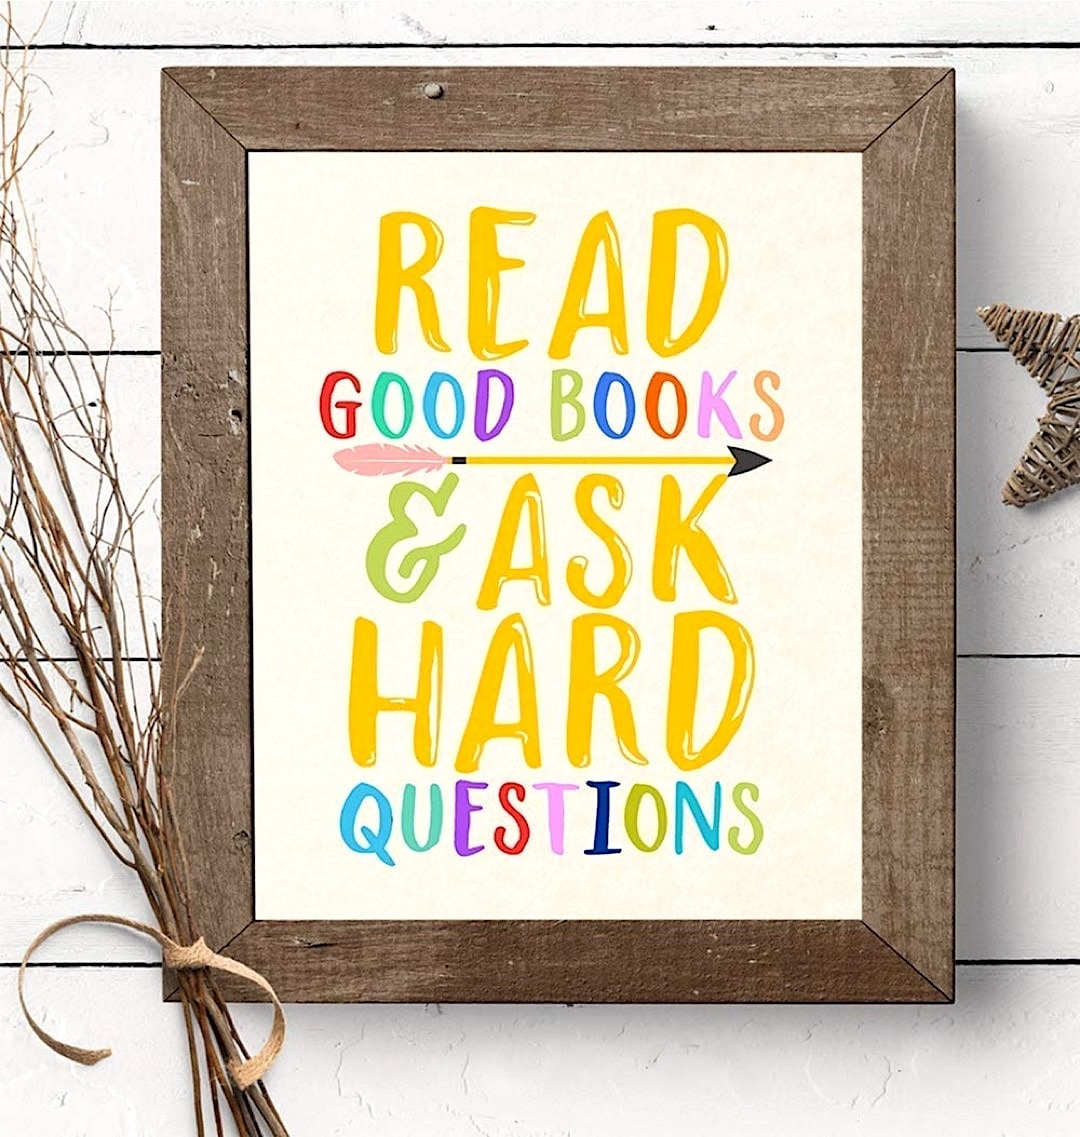 Read good books and ask hard questions - best read posters